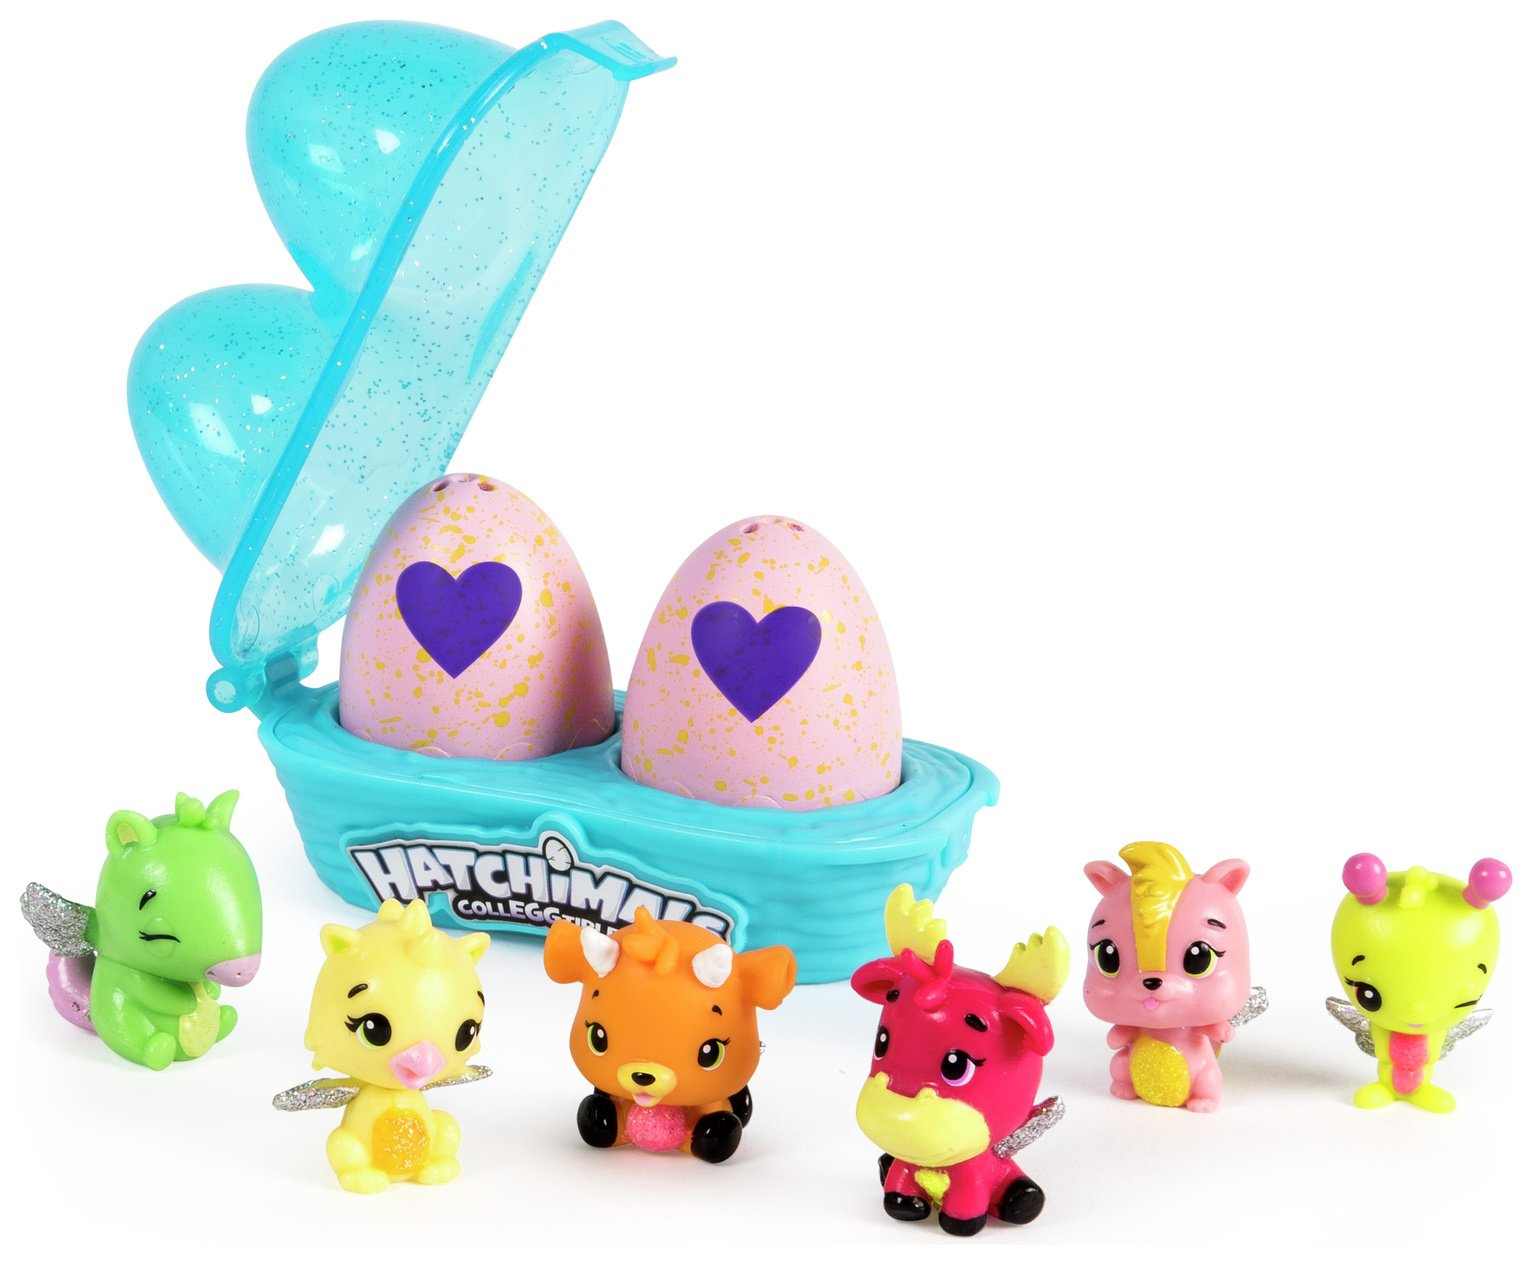 Image of Hatchimals Colleggtibles 2 Pack Egg Carton - Season 2